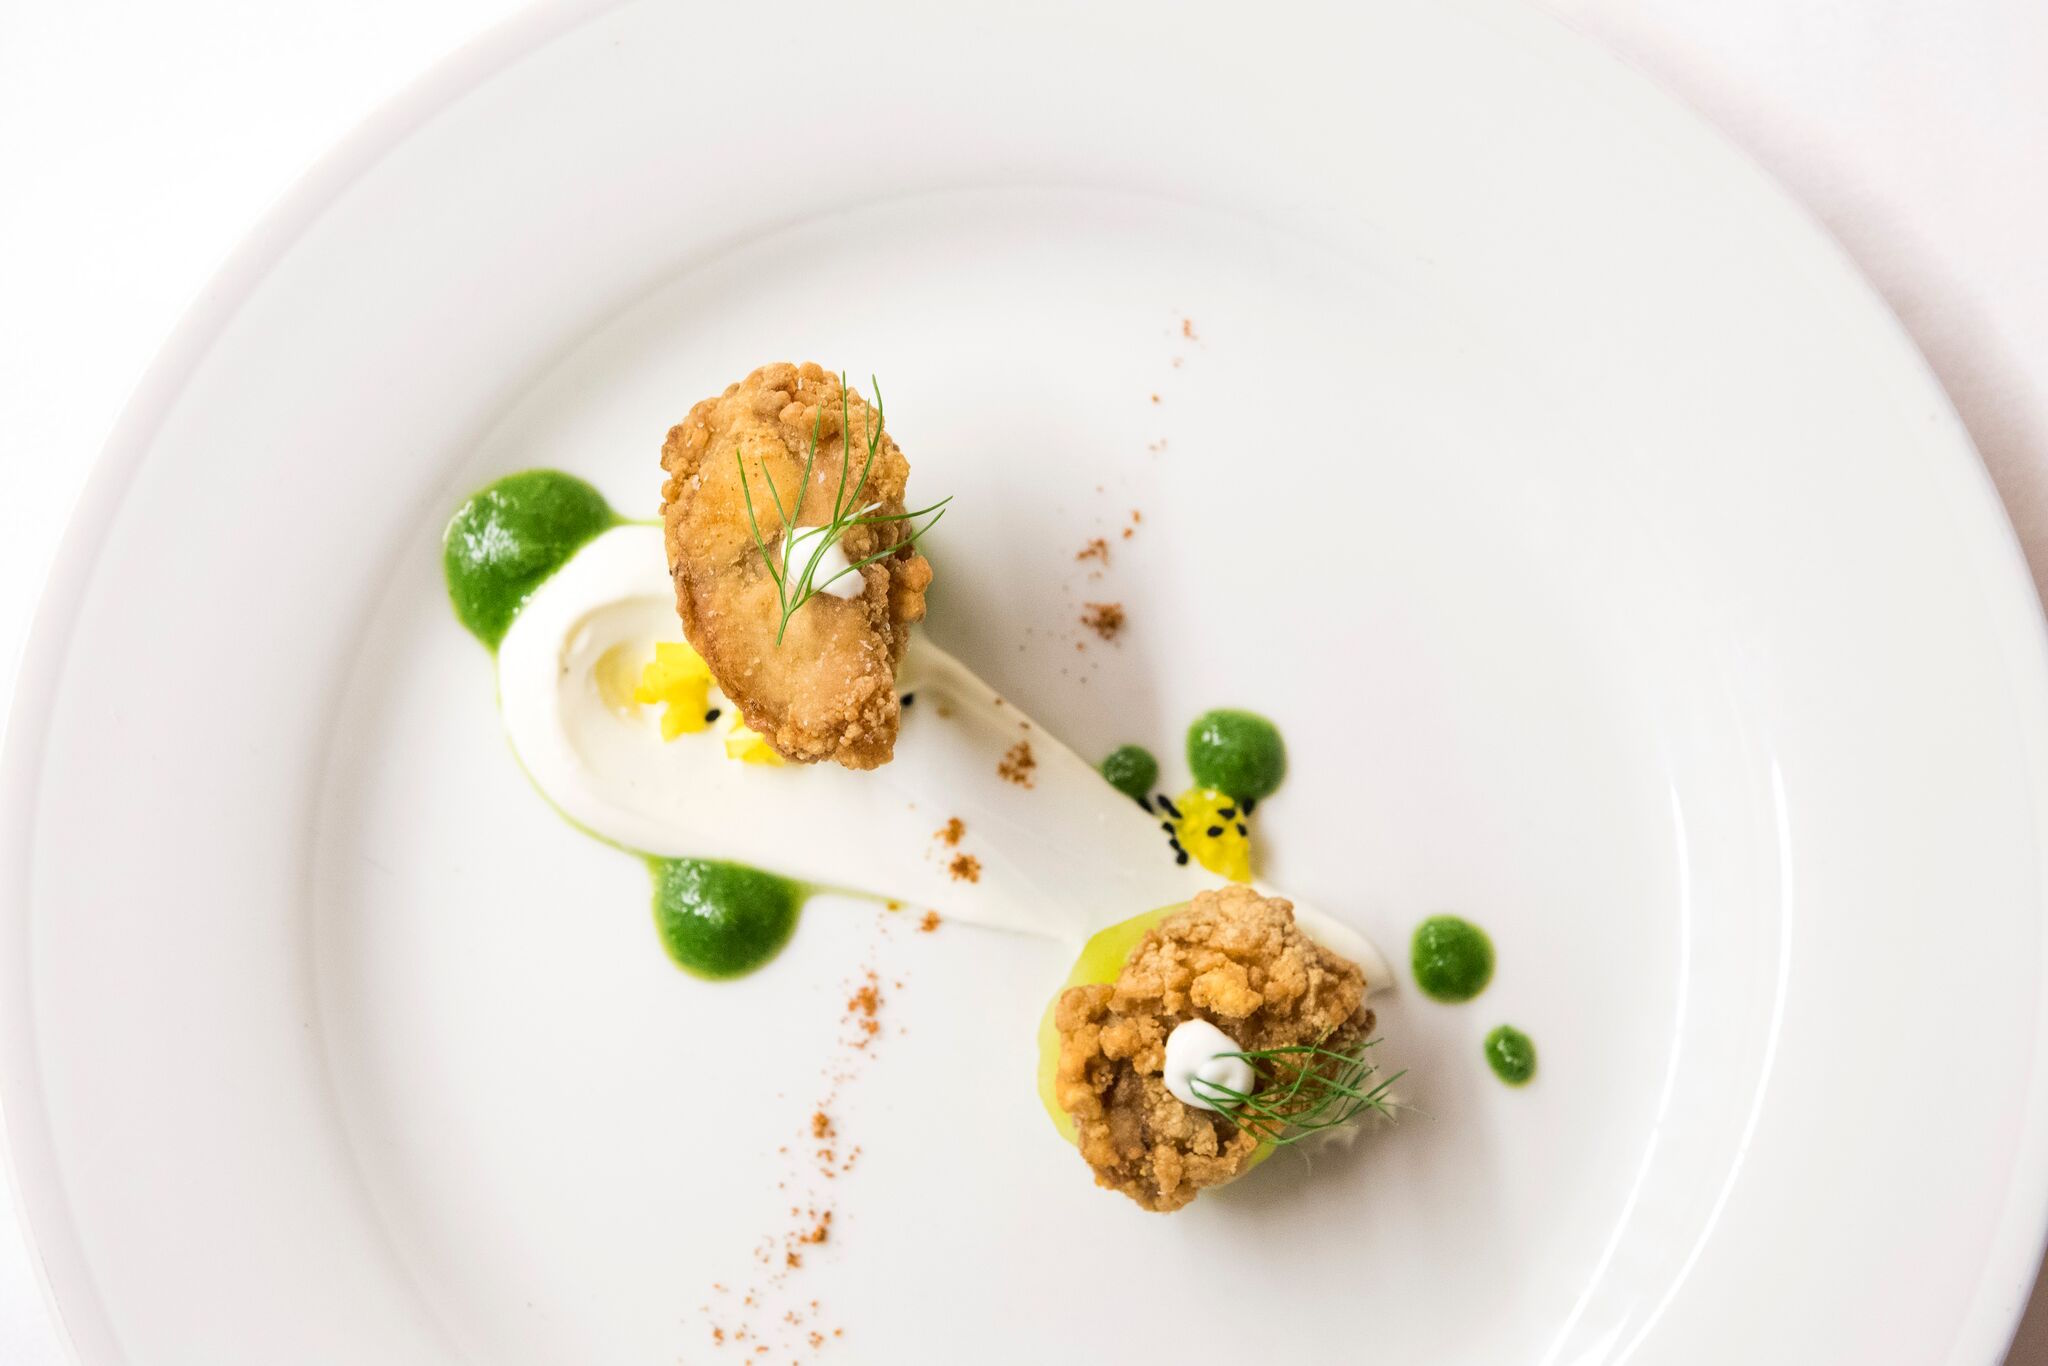 A plate served at last year's James Beard dinner